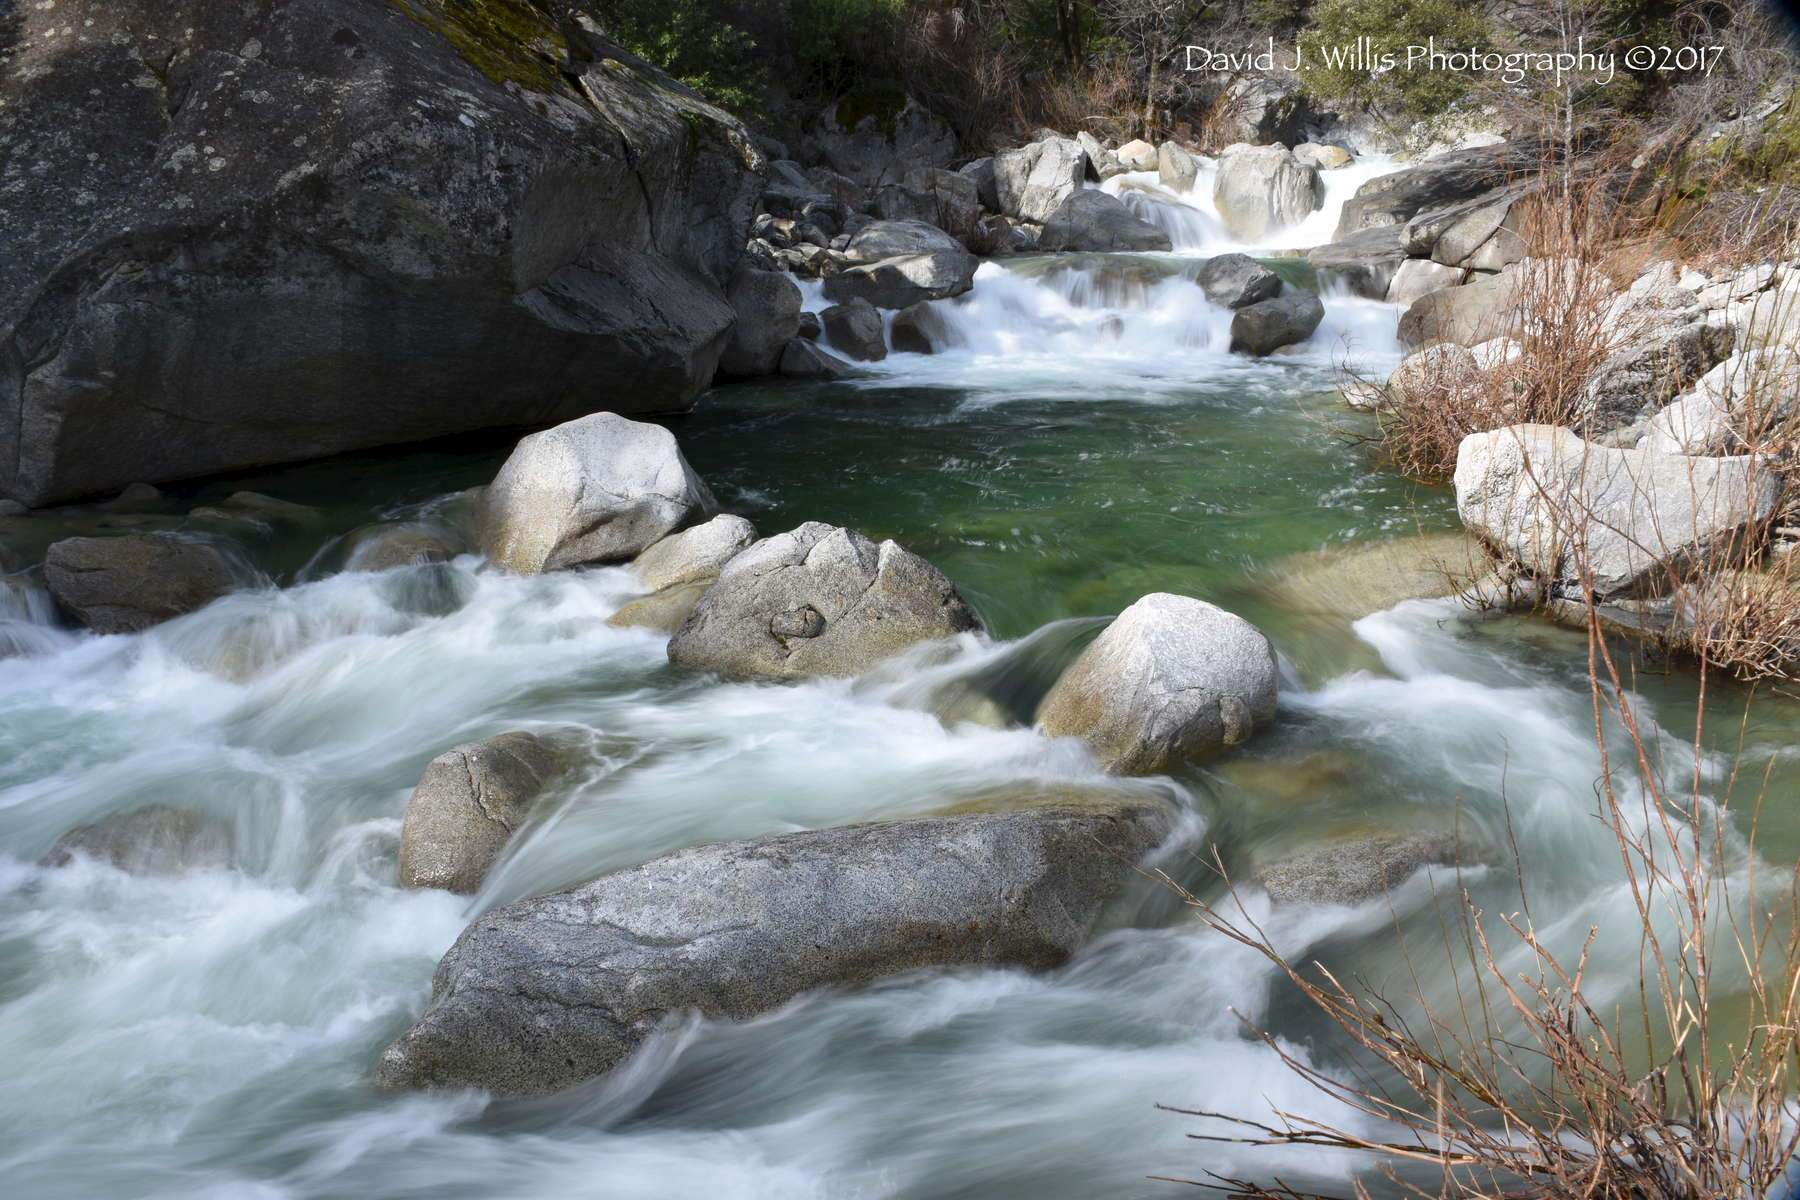 Rock Creek III, Feather River Canyon, Plumas County